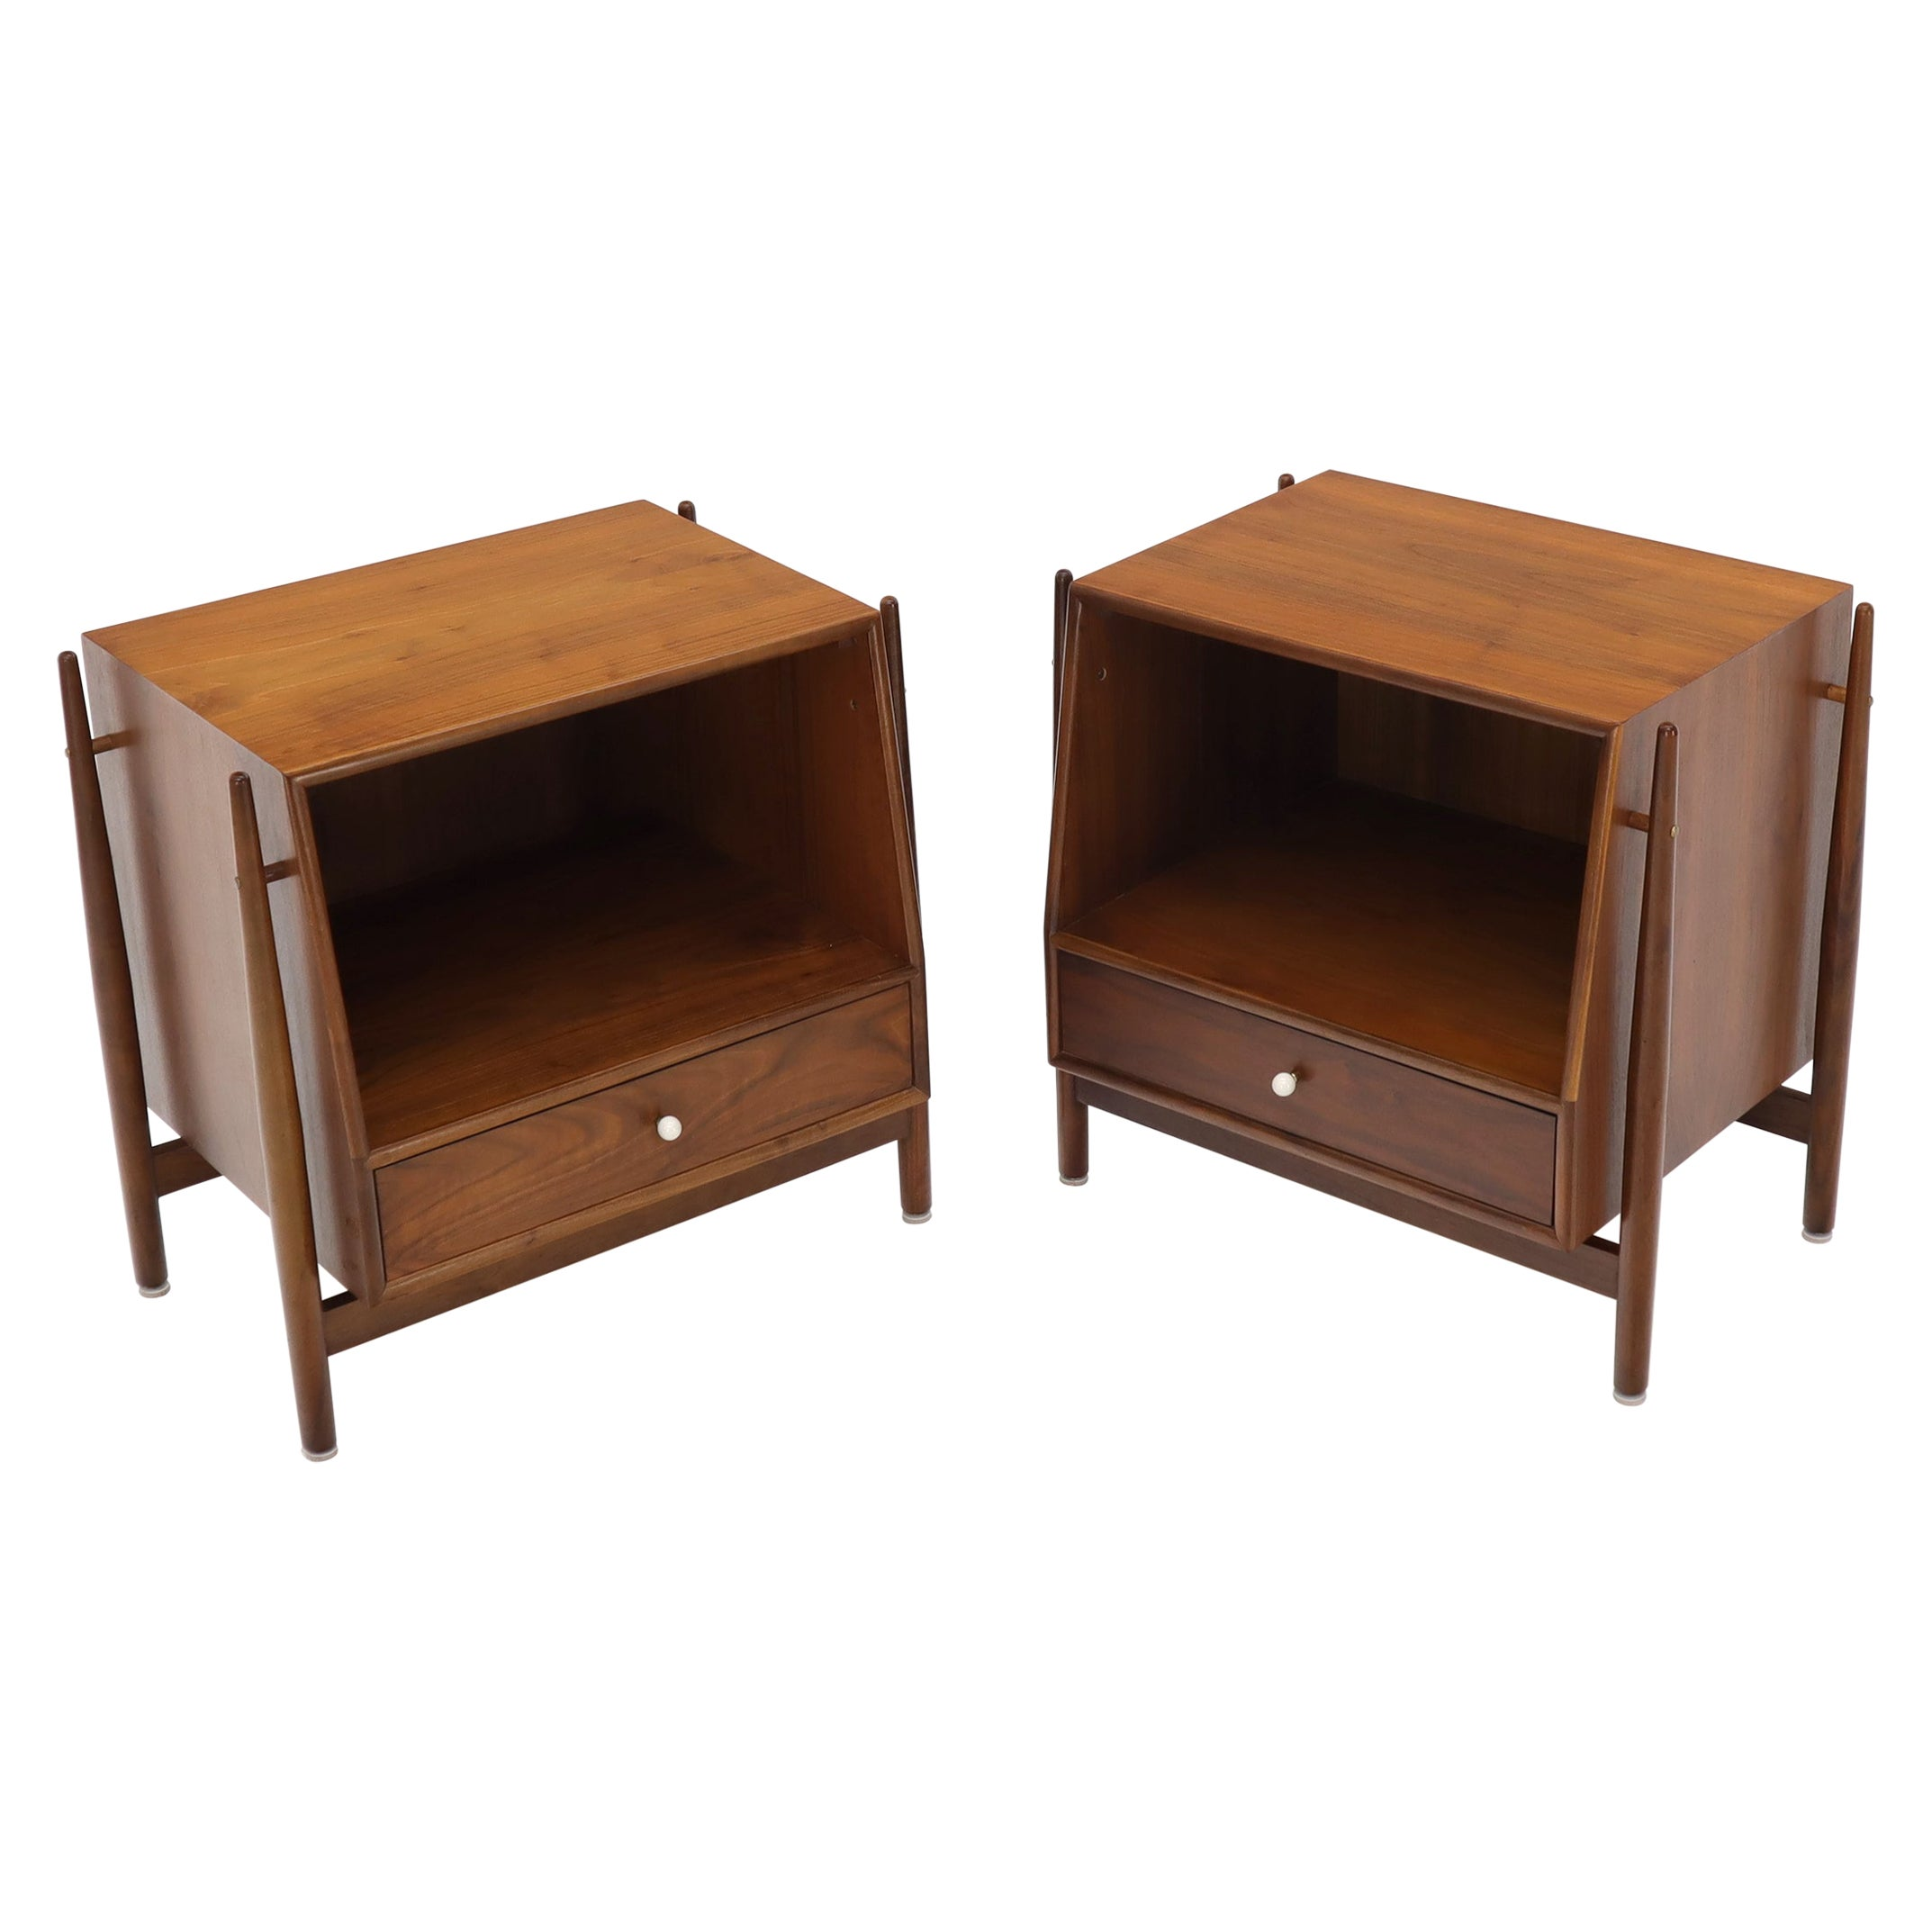 Pair of Walnut Mid-Century Modern End Tables Night Stands by Drexel